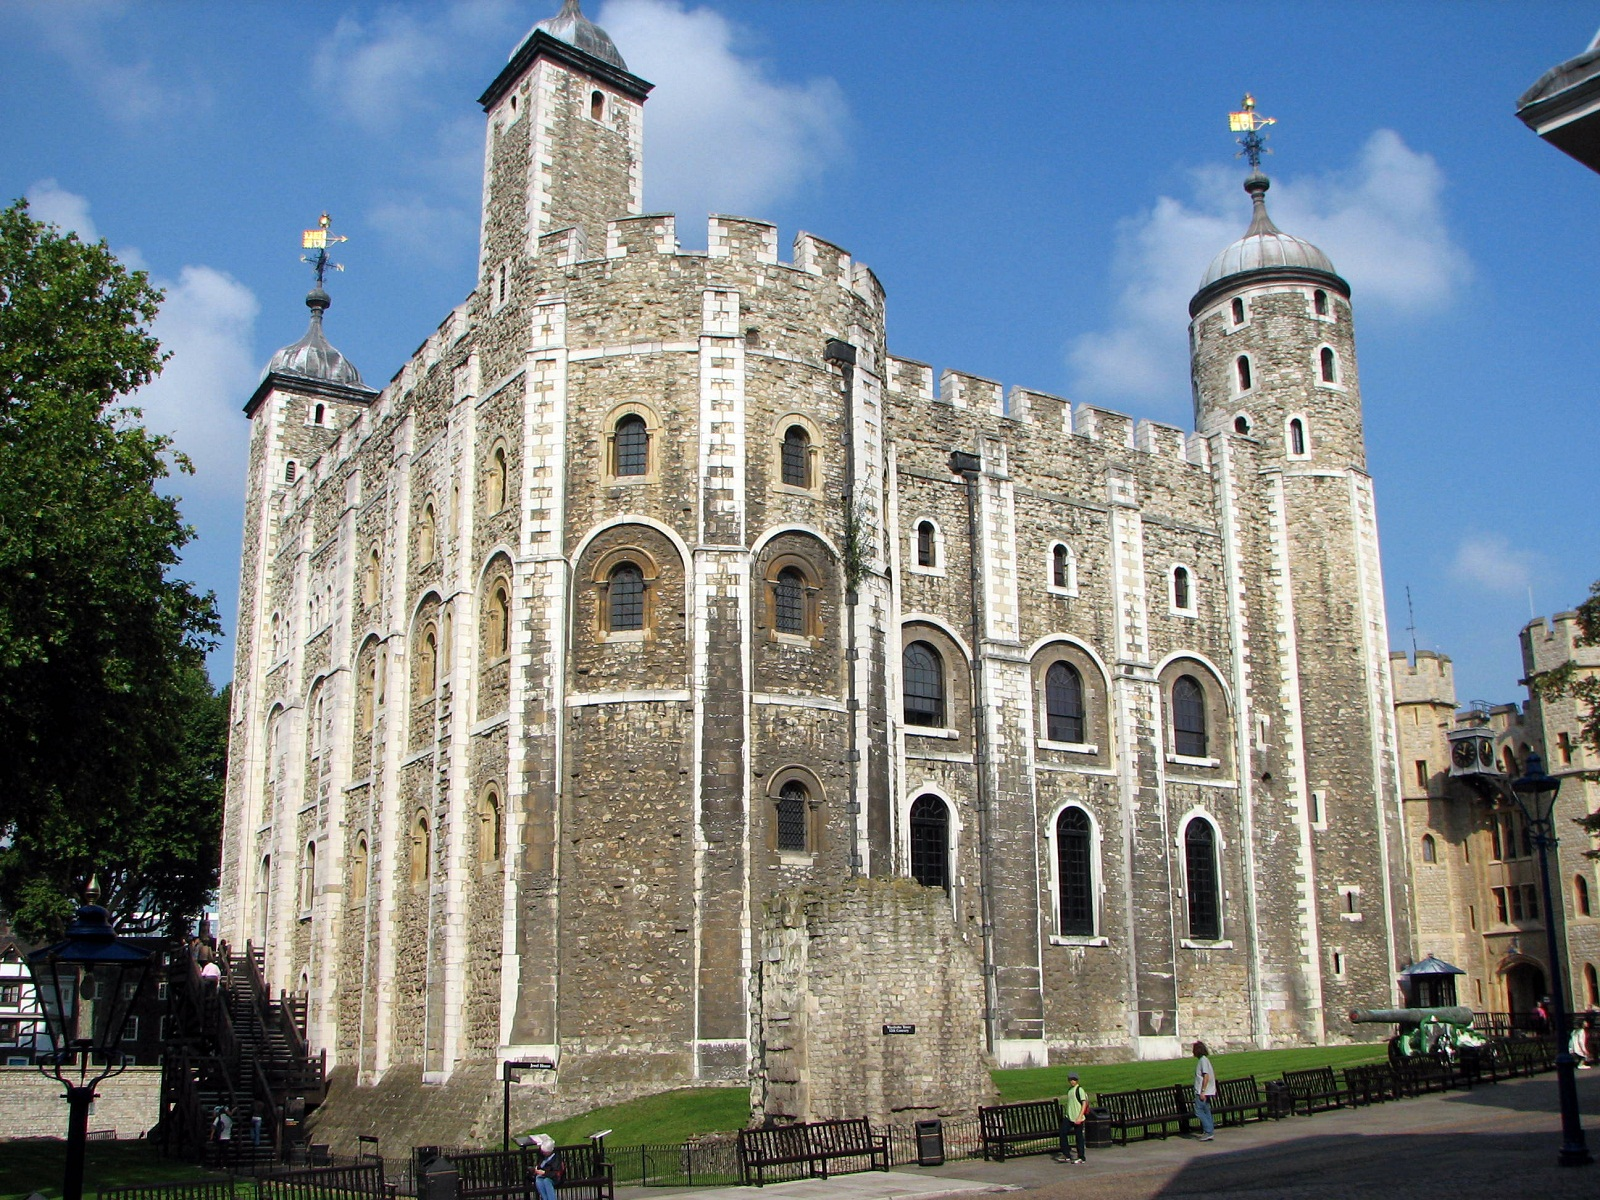 London Architecture, United Kingdom, Tower of London